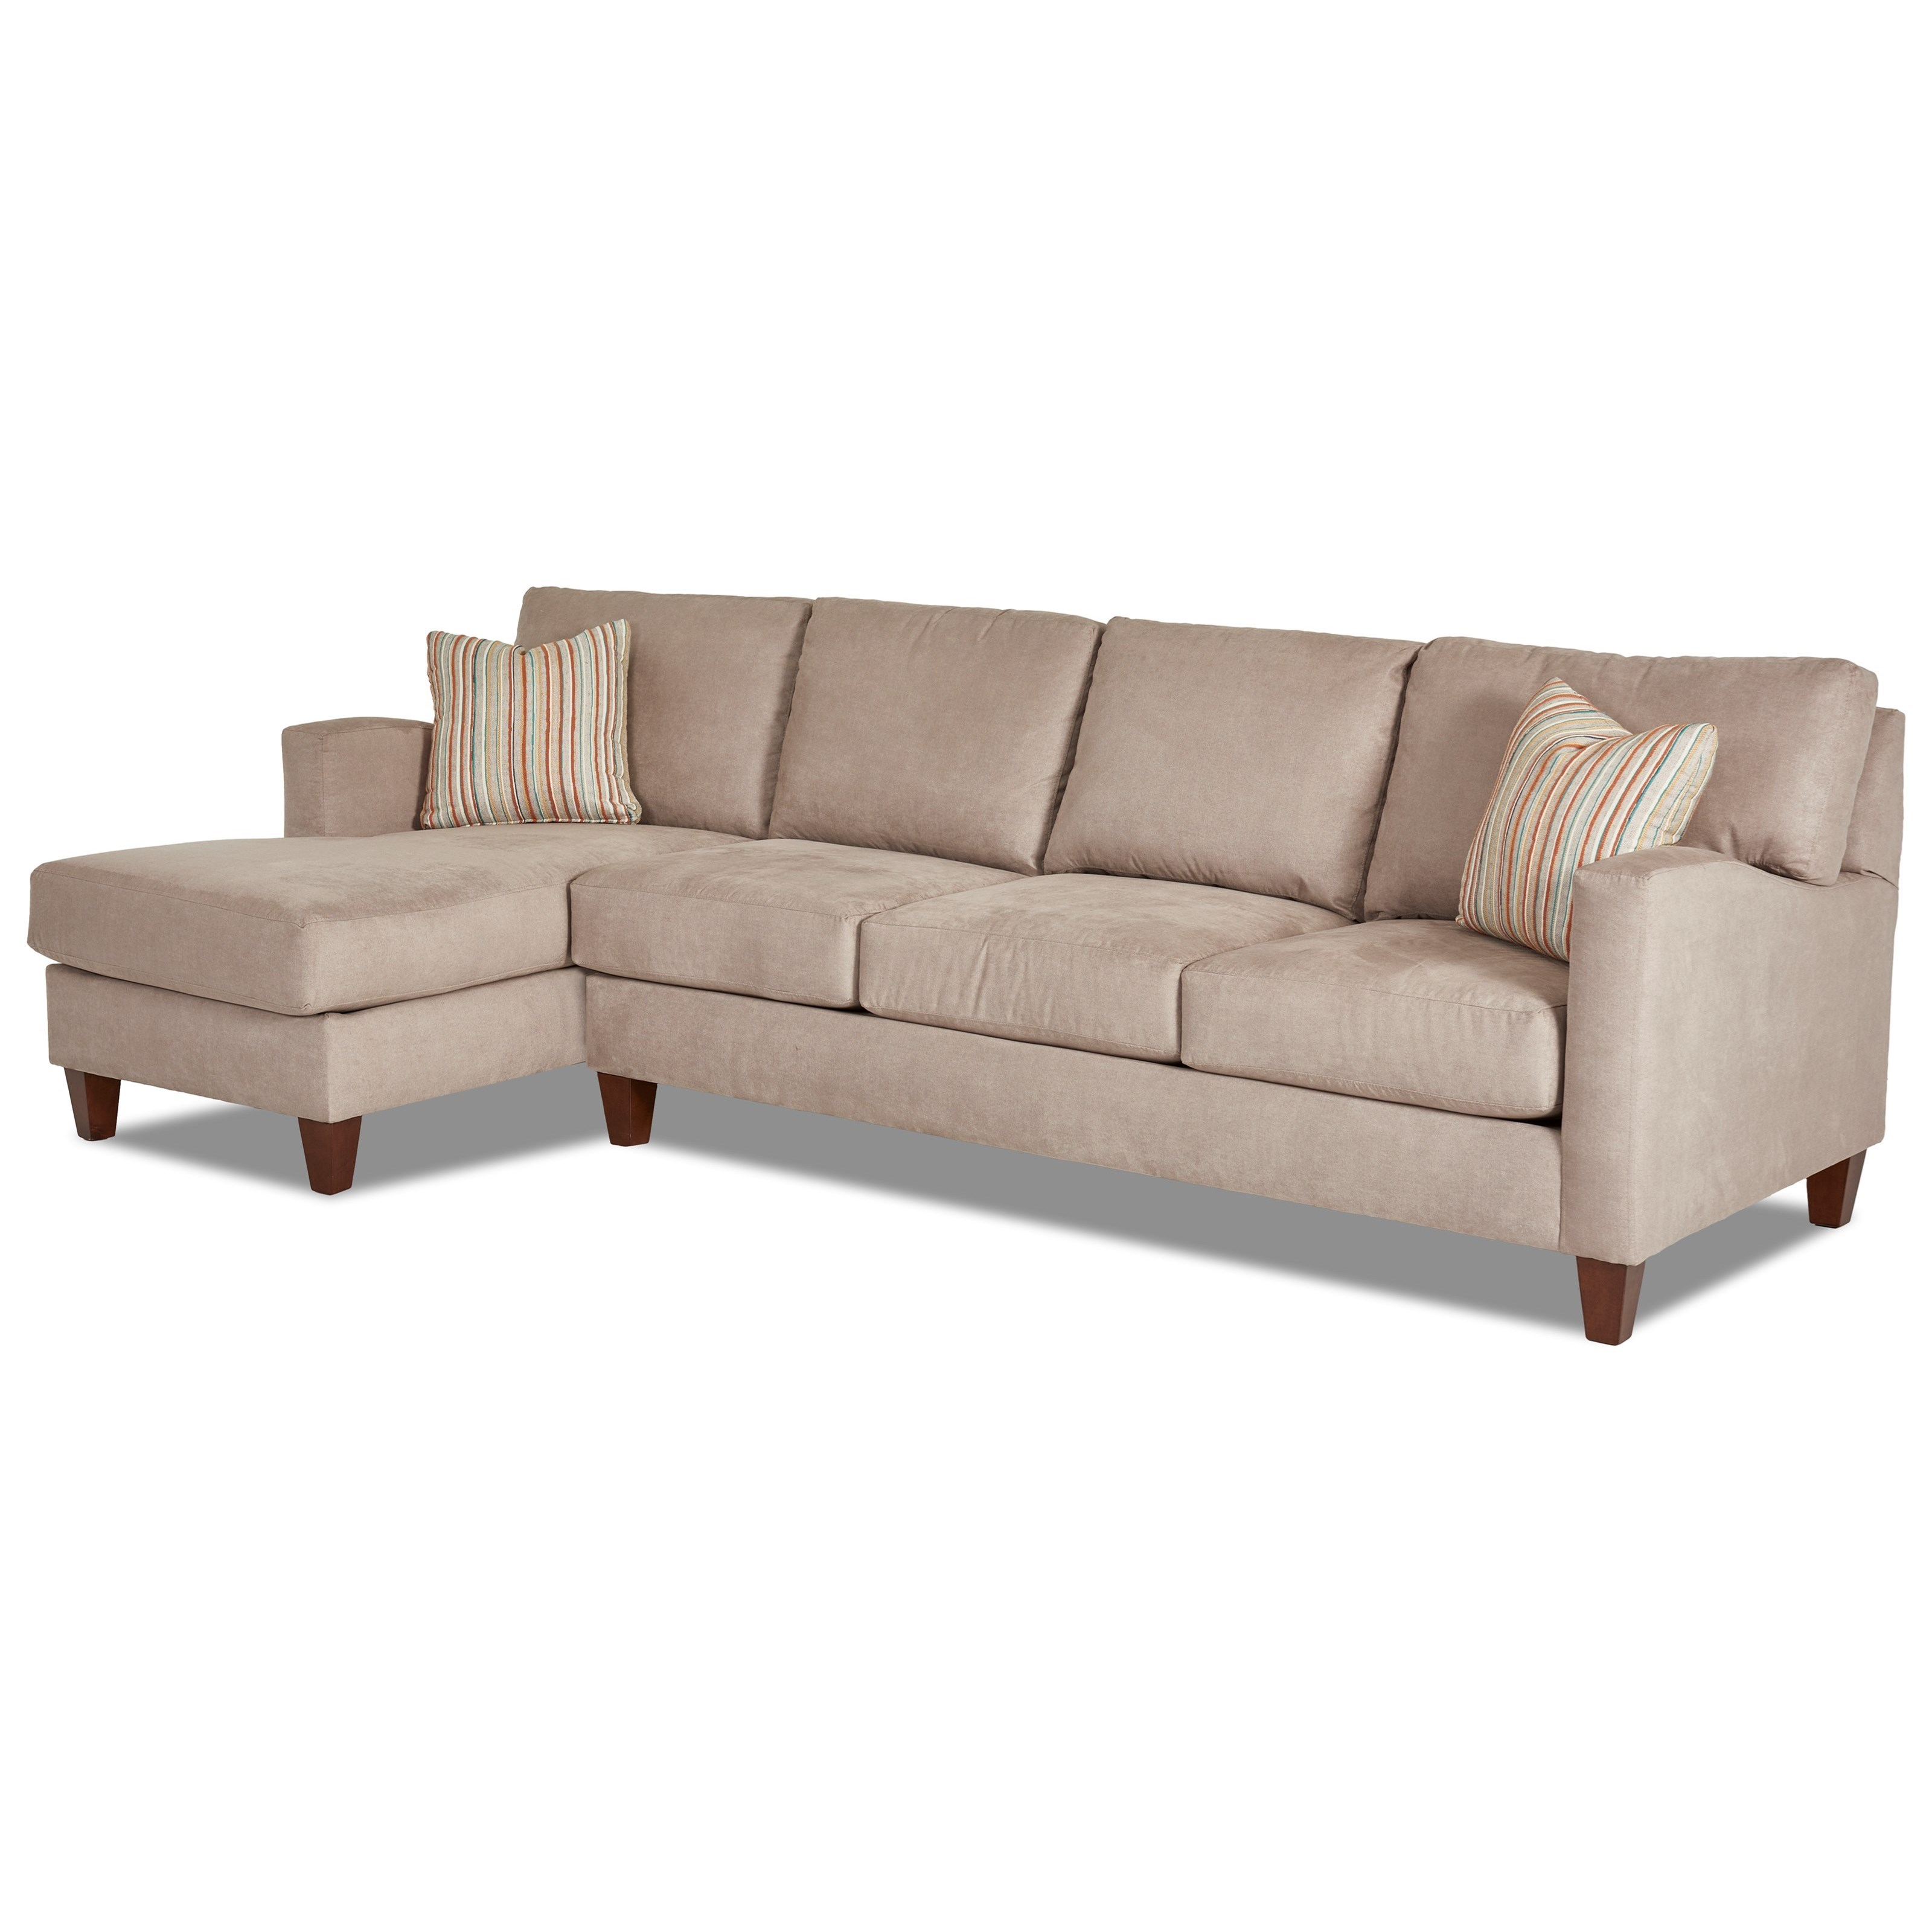 Klaussner Colleen 2 Pc Stationary Sectional w/ LAF Chaise - Item Number: K19300L CHASE+K19300R S